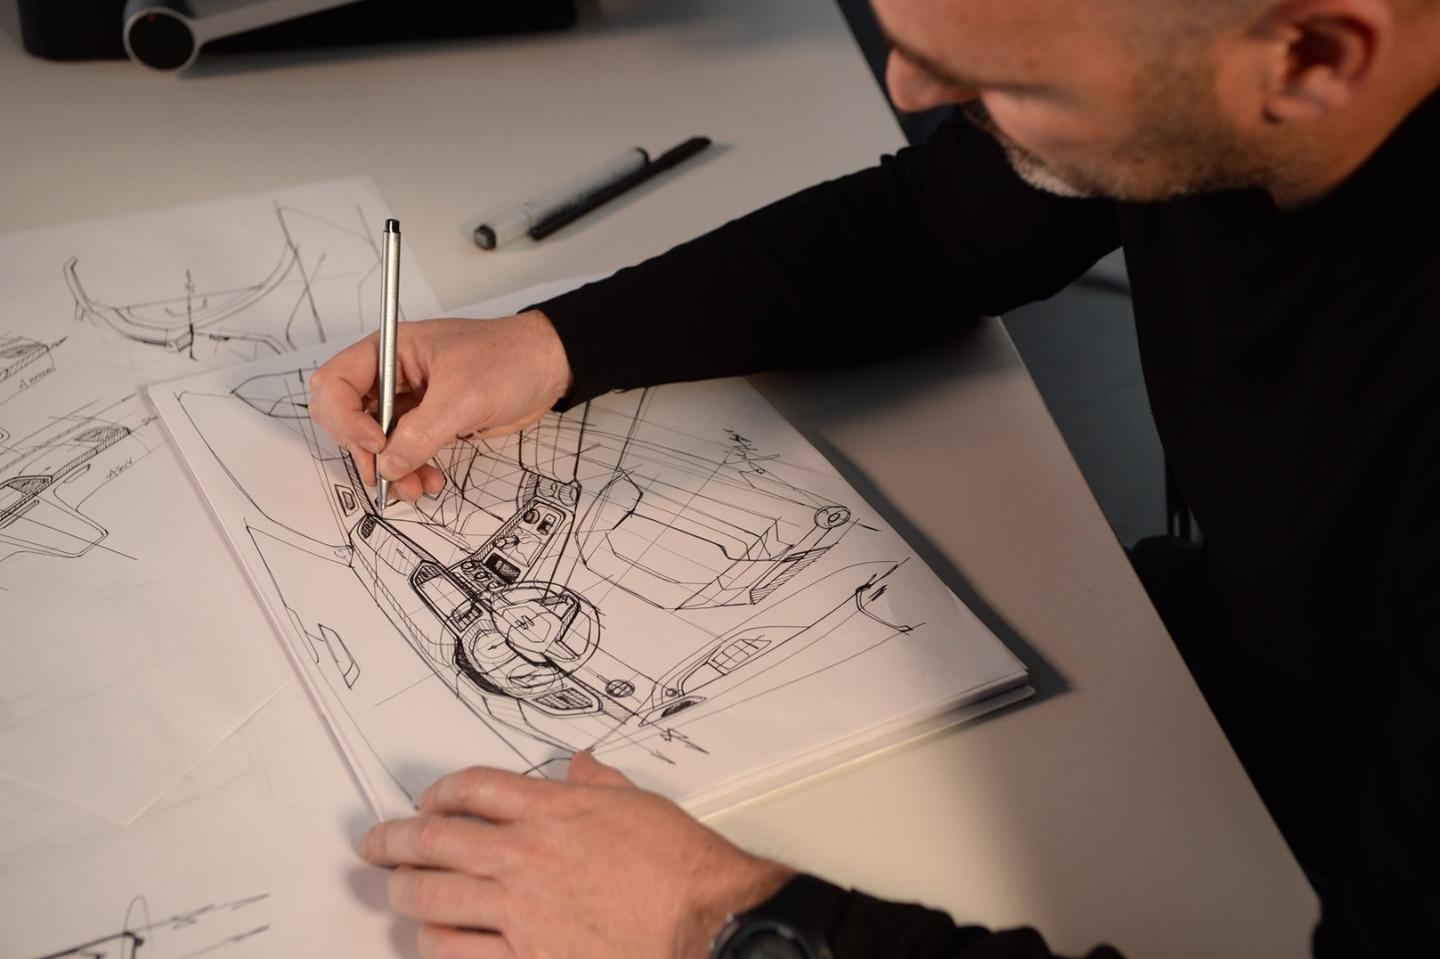 Over 1,000 sketches are created over the course of the design process